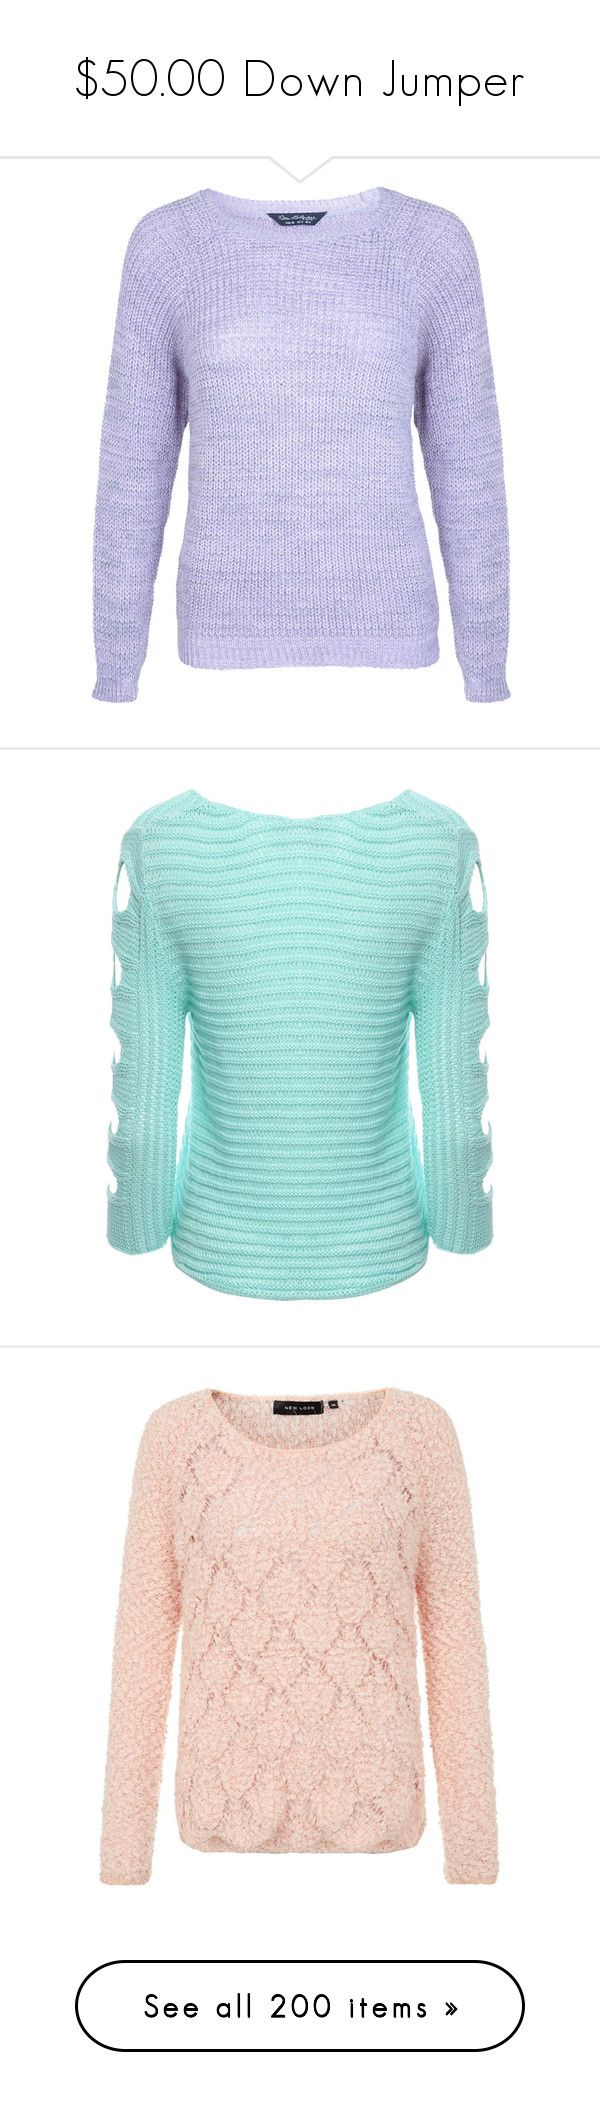 """""""$50.00 Down Jumper"""" by pinky-chocolatte ❤ liked on Polyvore featuring tops, sweaters, purple, jumpers sweaters, acrylic sweater, purple sweater, miss selfridge, jumper top, aqua and cutout tops"""